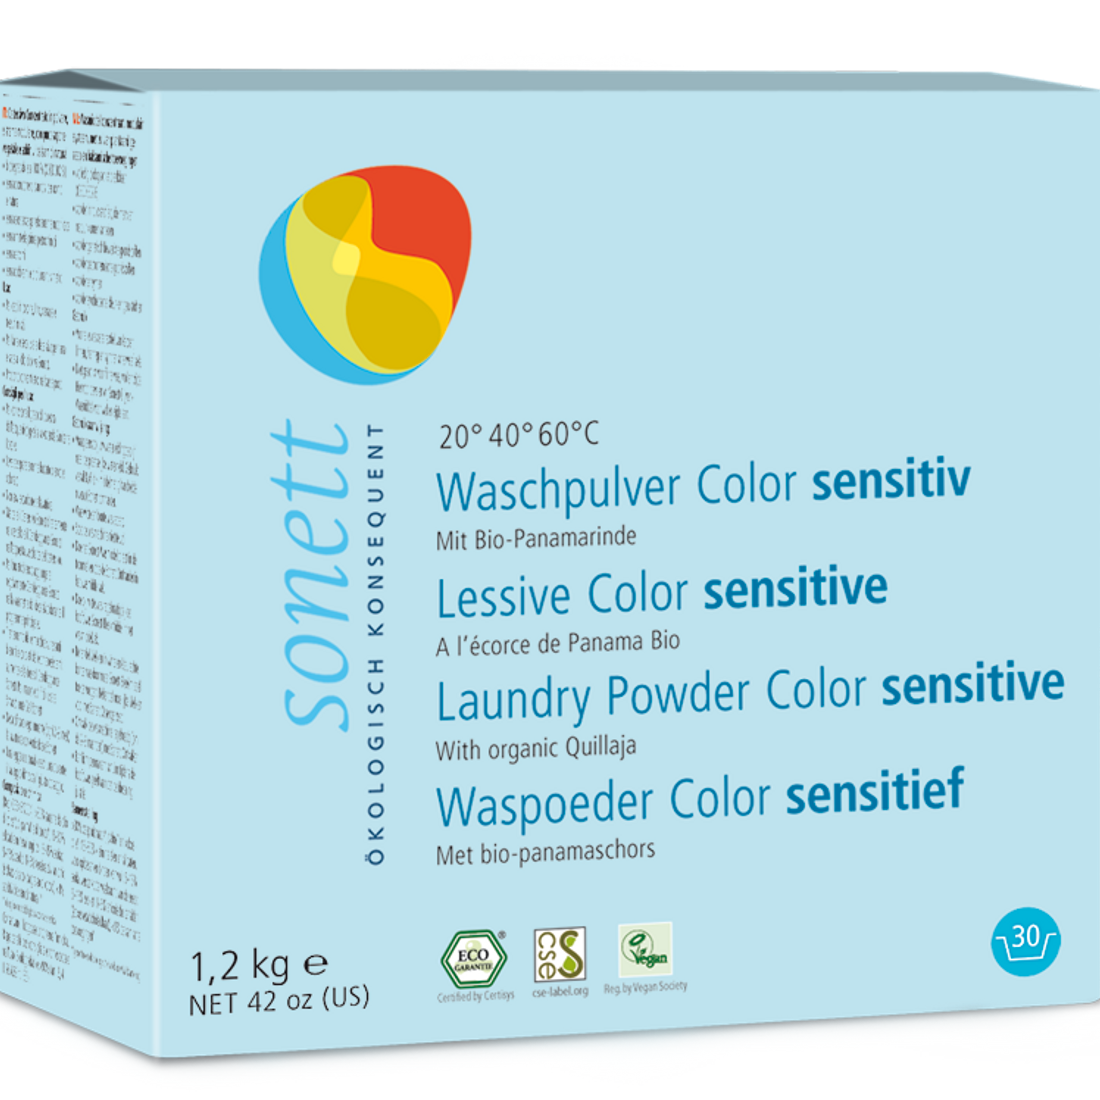 Sonett Eco Neutral Powdered Laundry Detergent for Colors 42 oz / 1.2 kg